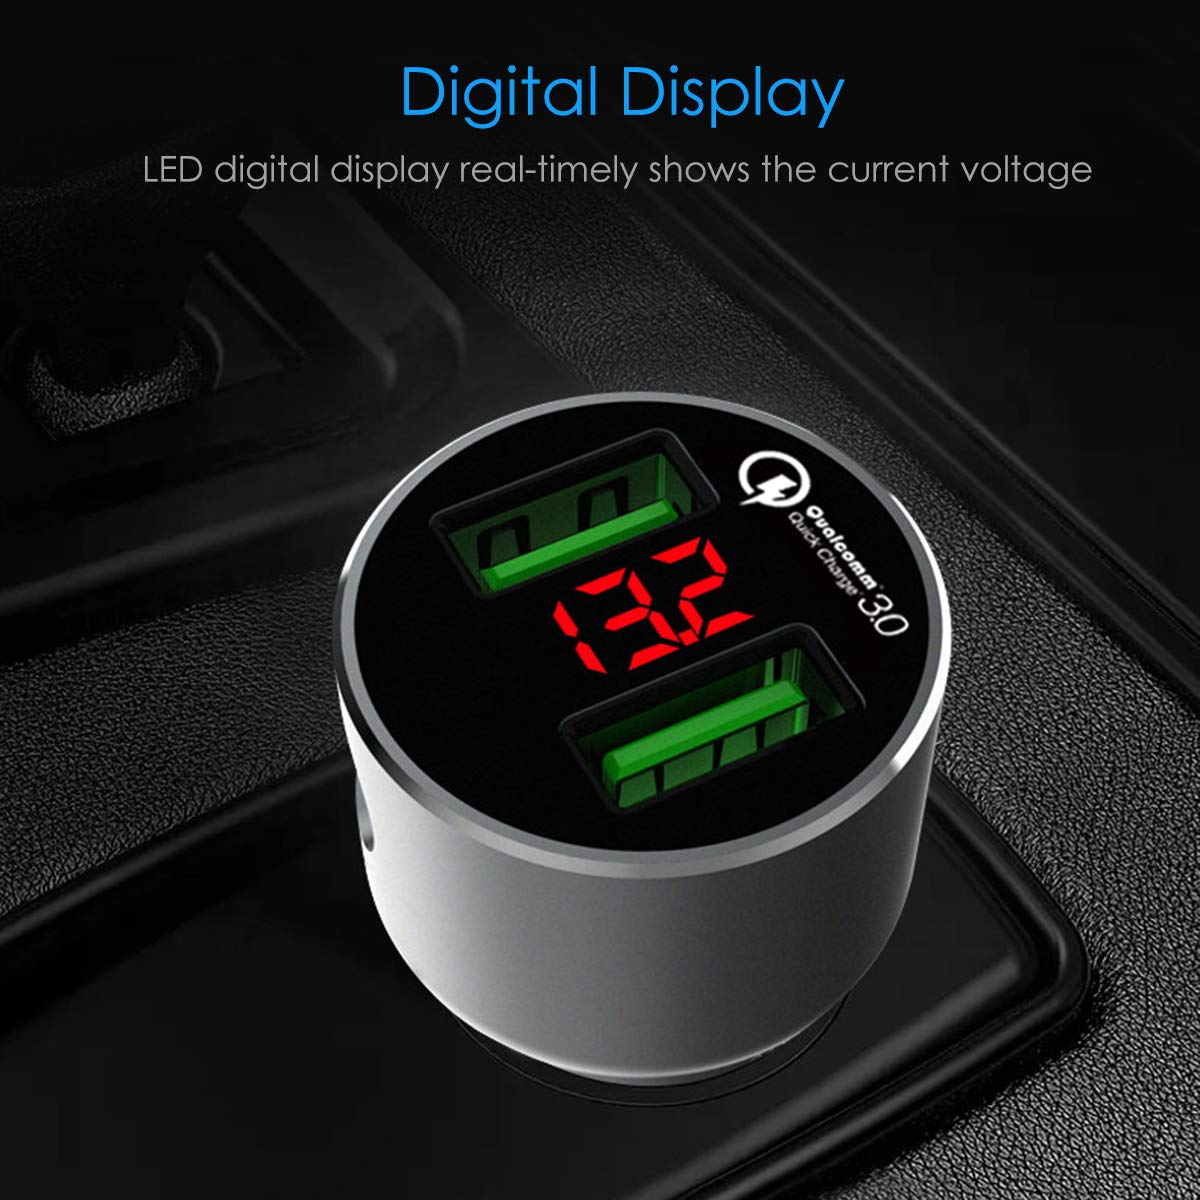 Nexus iPhone XR XS Max X 8 7 6s Plus Fast Car Charger Adapter with LED Display Compatible for Samsung Galaxy S9 S8 S7 Edge Plus Note 9 8 36W Quick Charge 3.0 Dual USB Car Charger iPad Air Mini